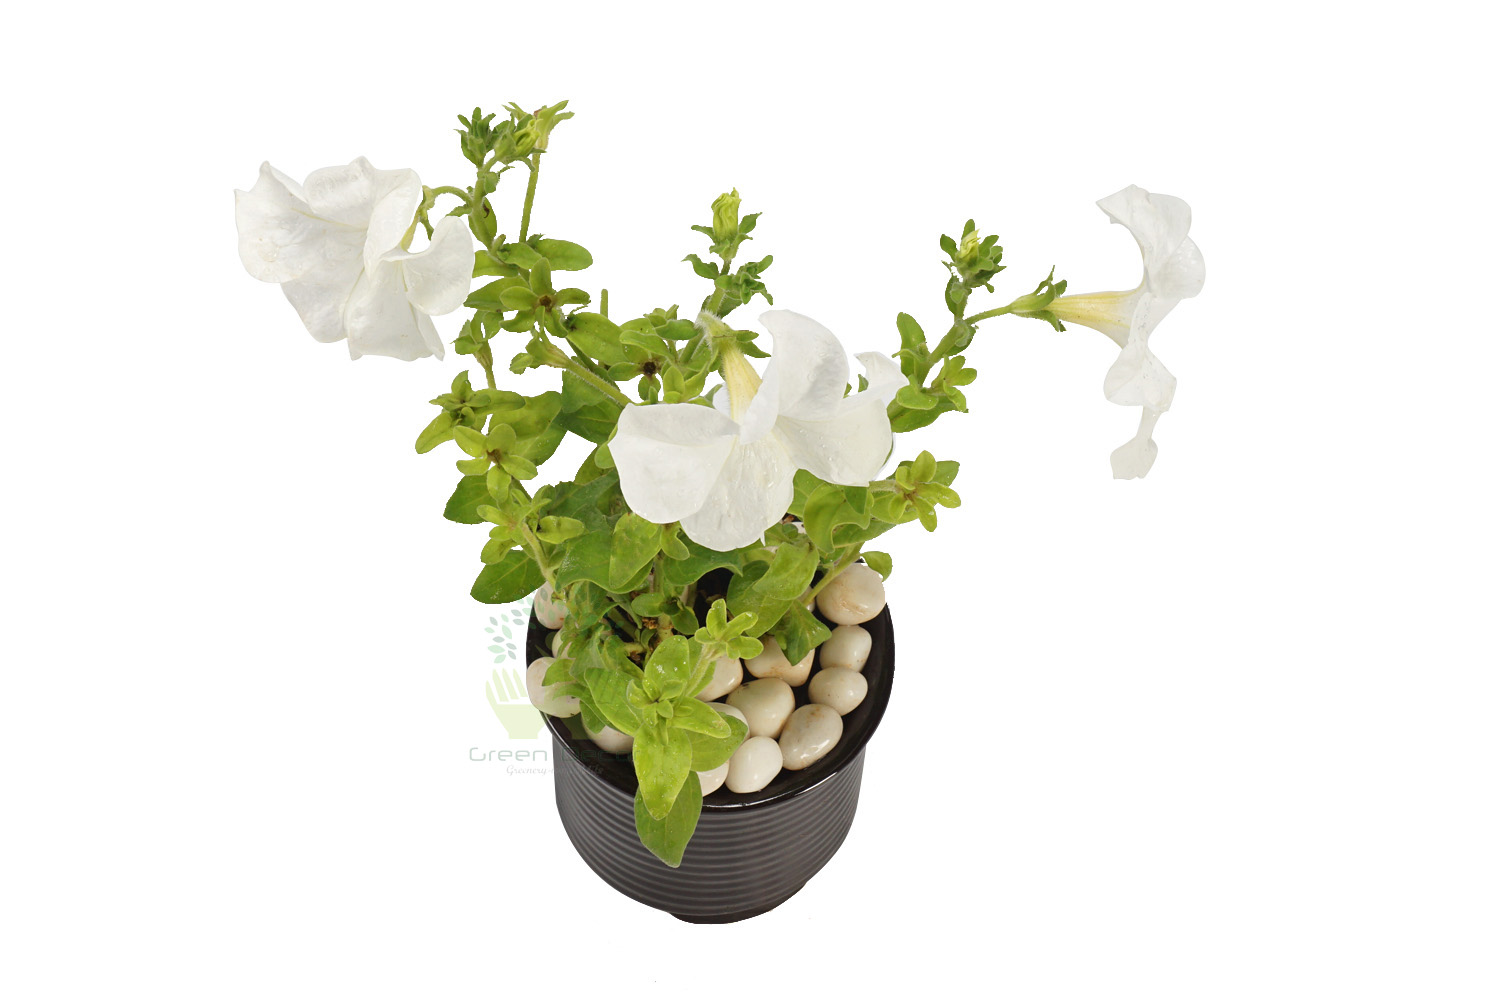 Buy Petunia White Plant Top View by the best online nursery shop Greendecor.